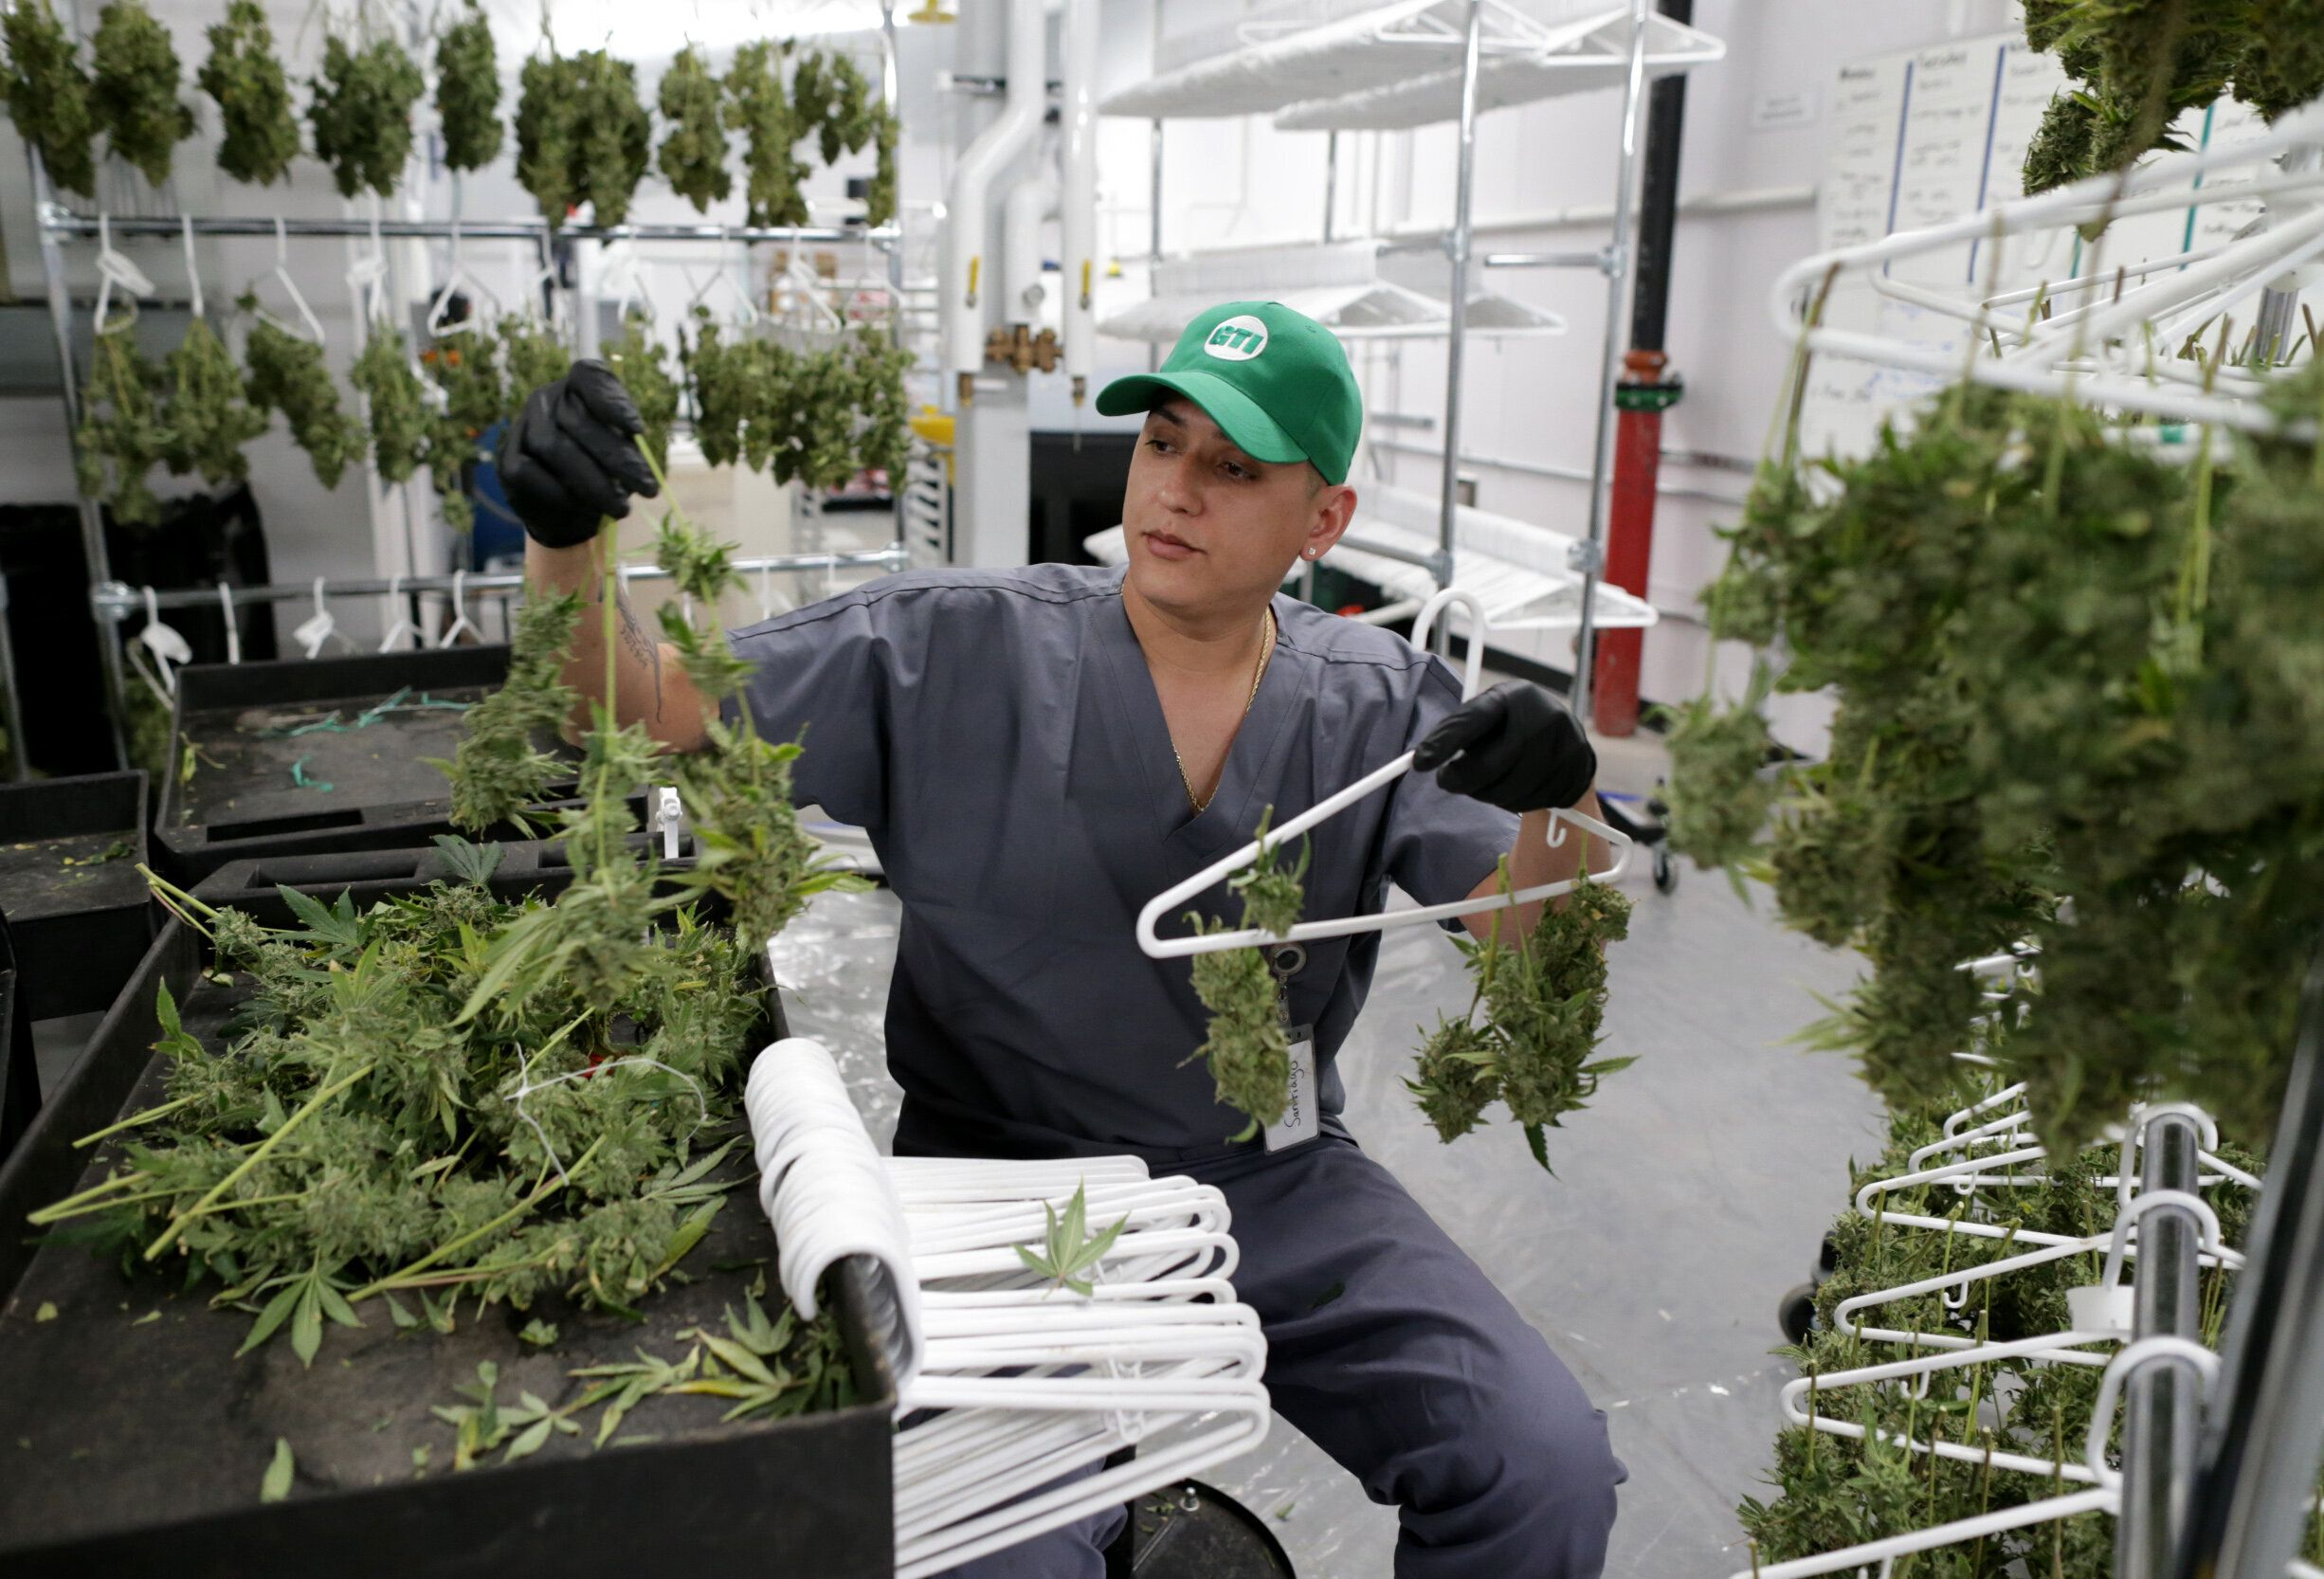 Jonell Santiago works at Green Thumb Industries cultivation center in Holyoke on Jan. 31, 2019. Mayor Alex Morse recruited th